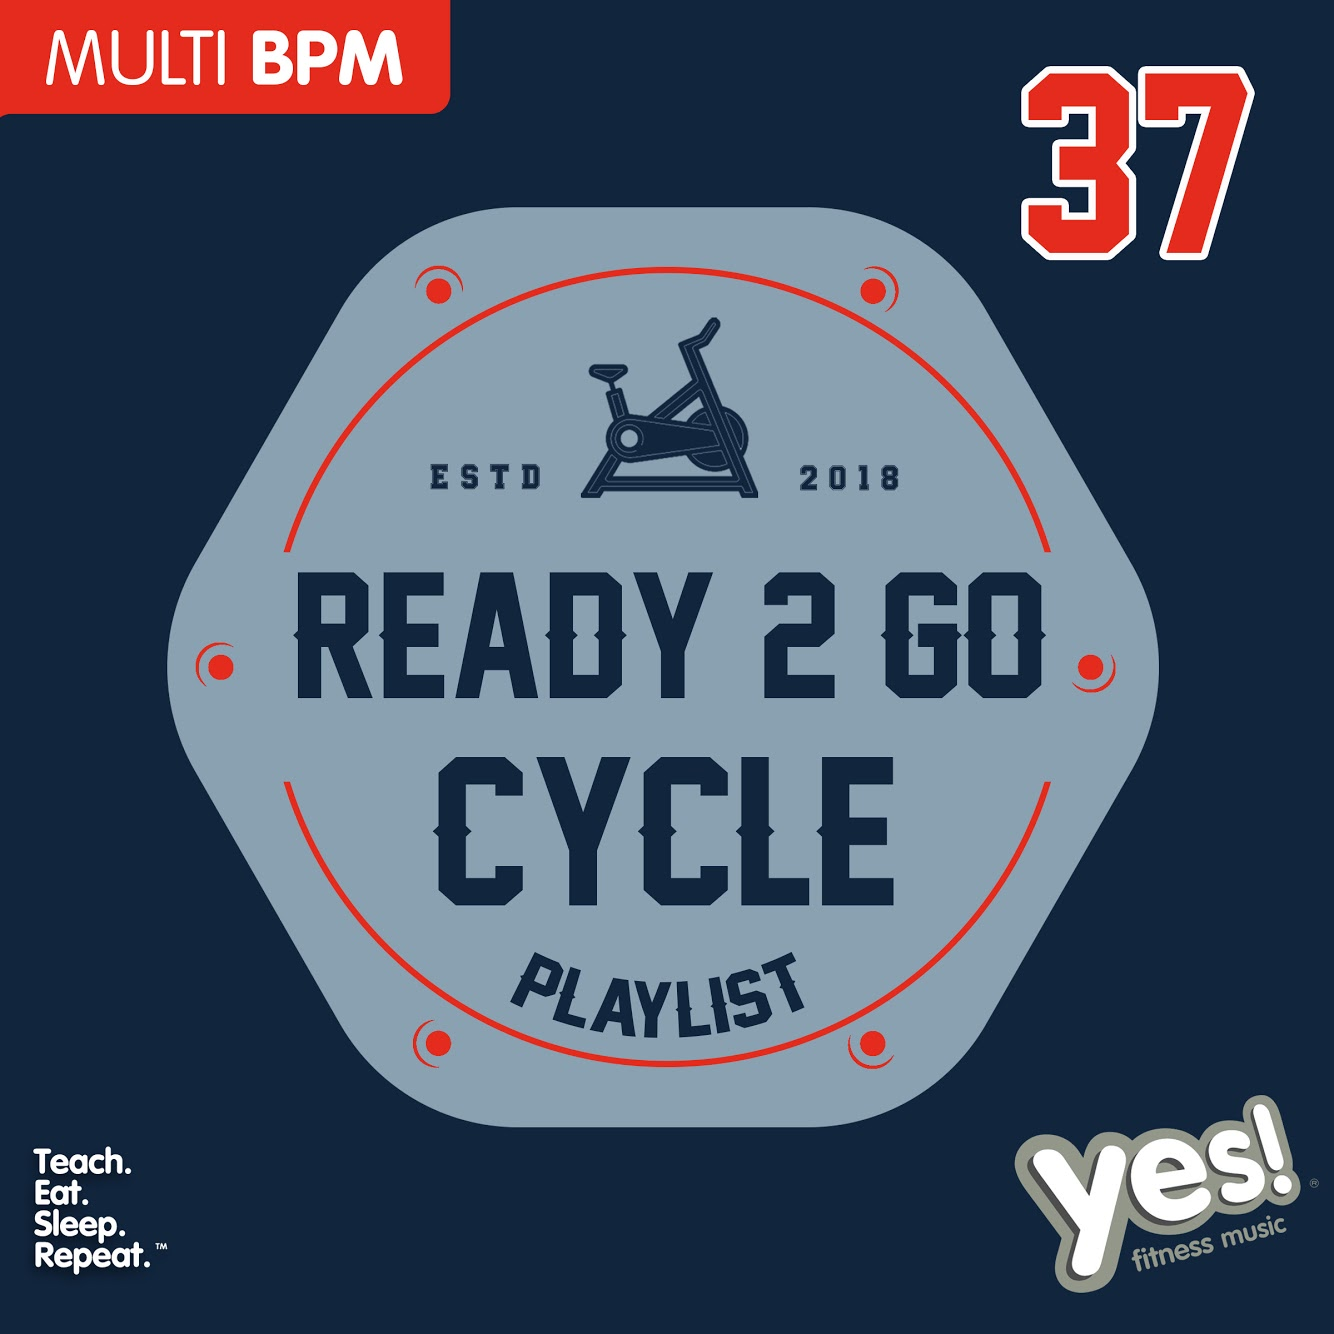 Ready 2 Go Cycle Playlist 37 : Yes! Fitness Music